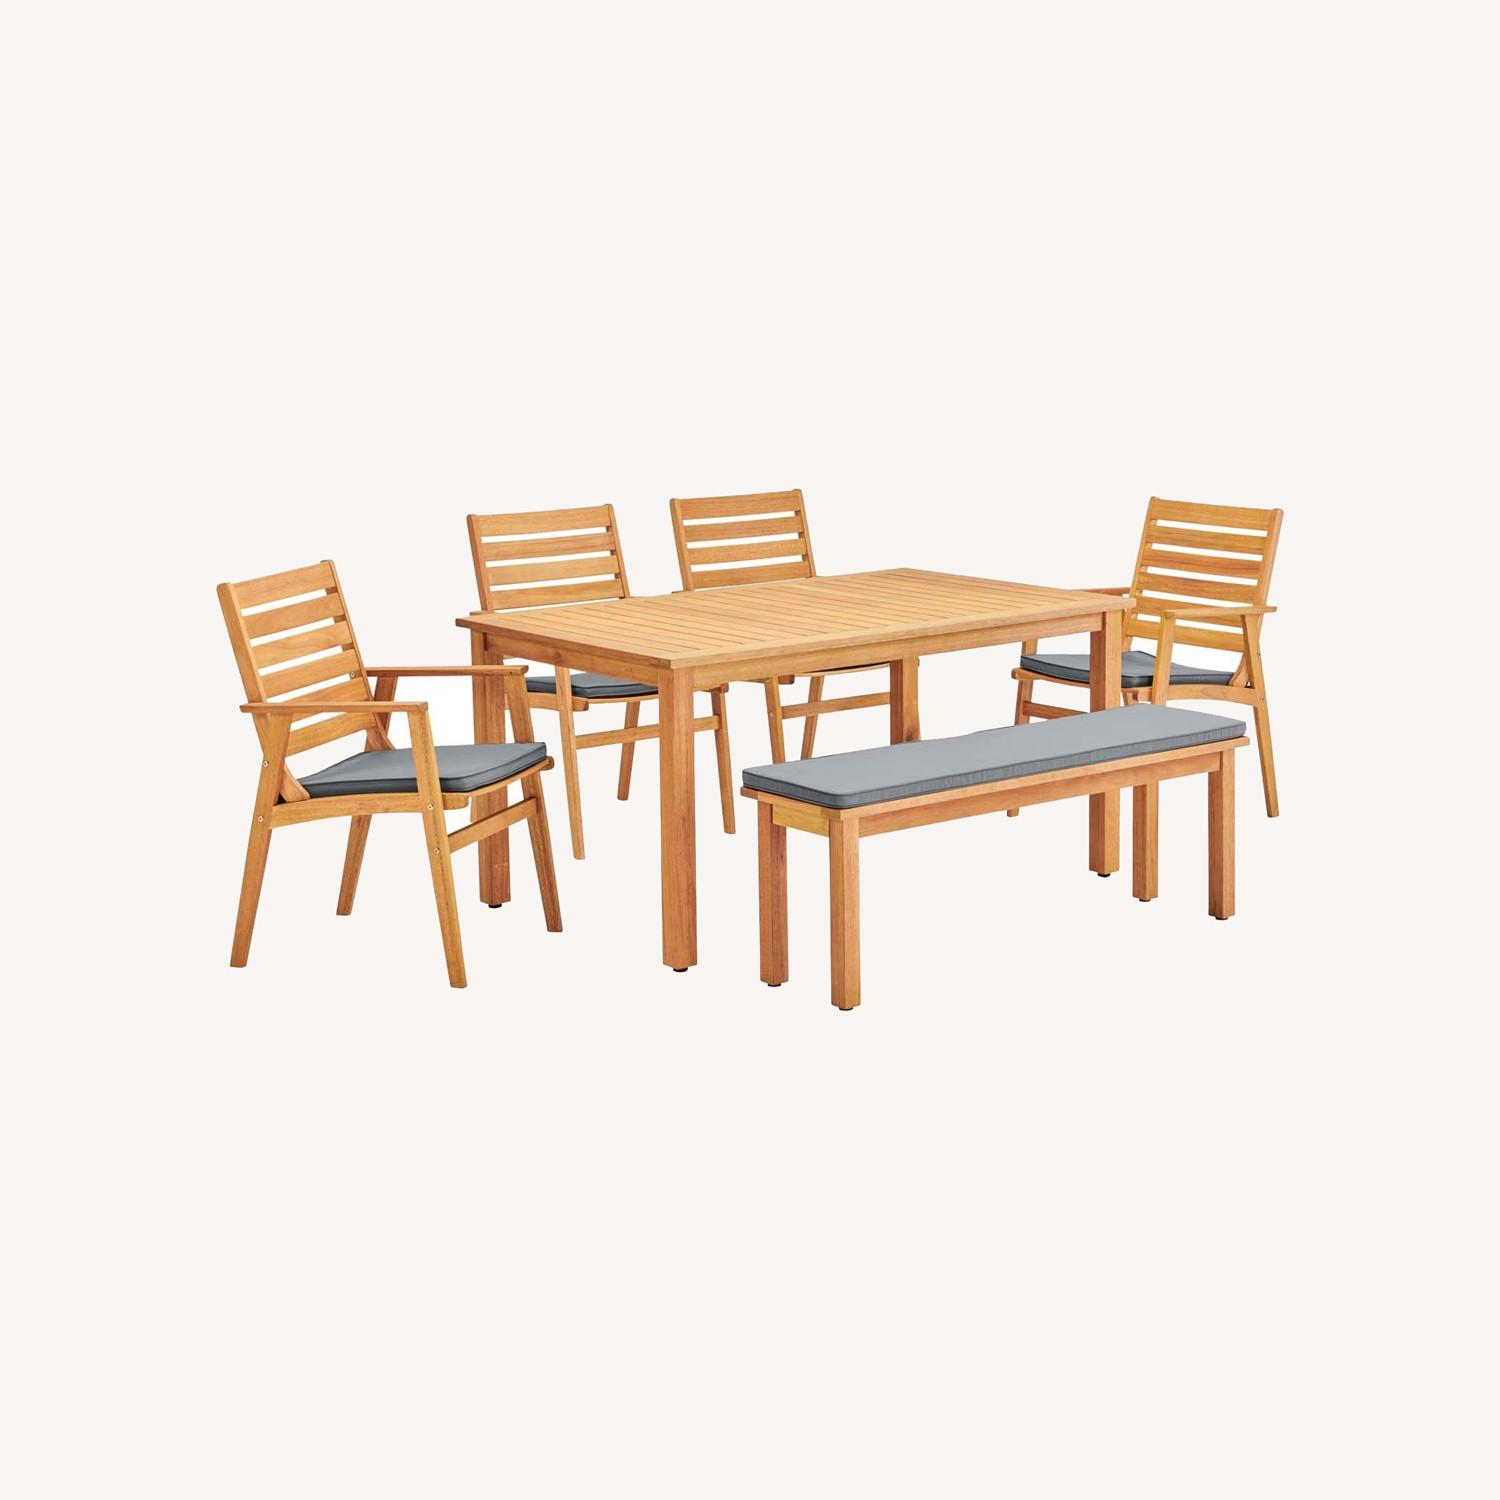 6-Piece Outdoor Patio Set In Natural Gray Wood - image-8